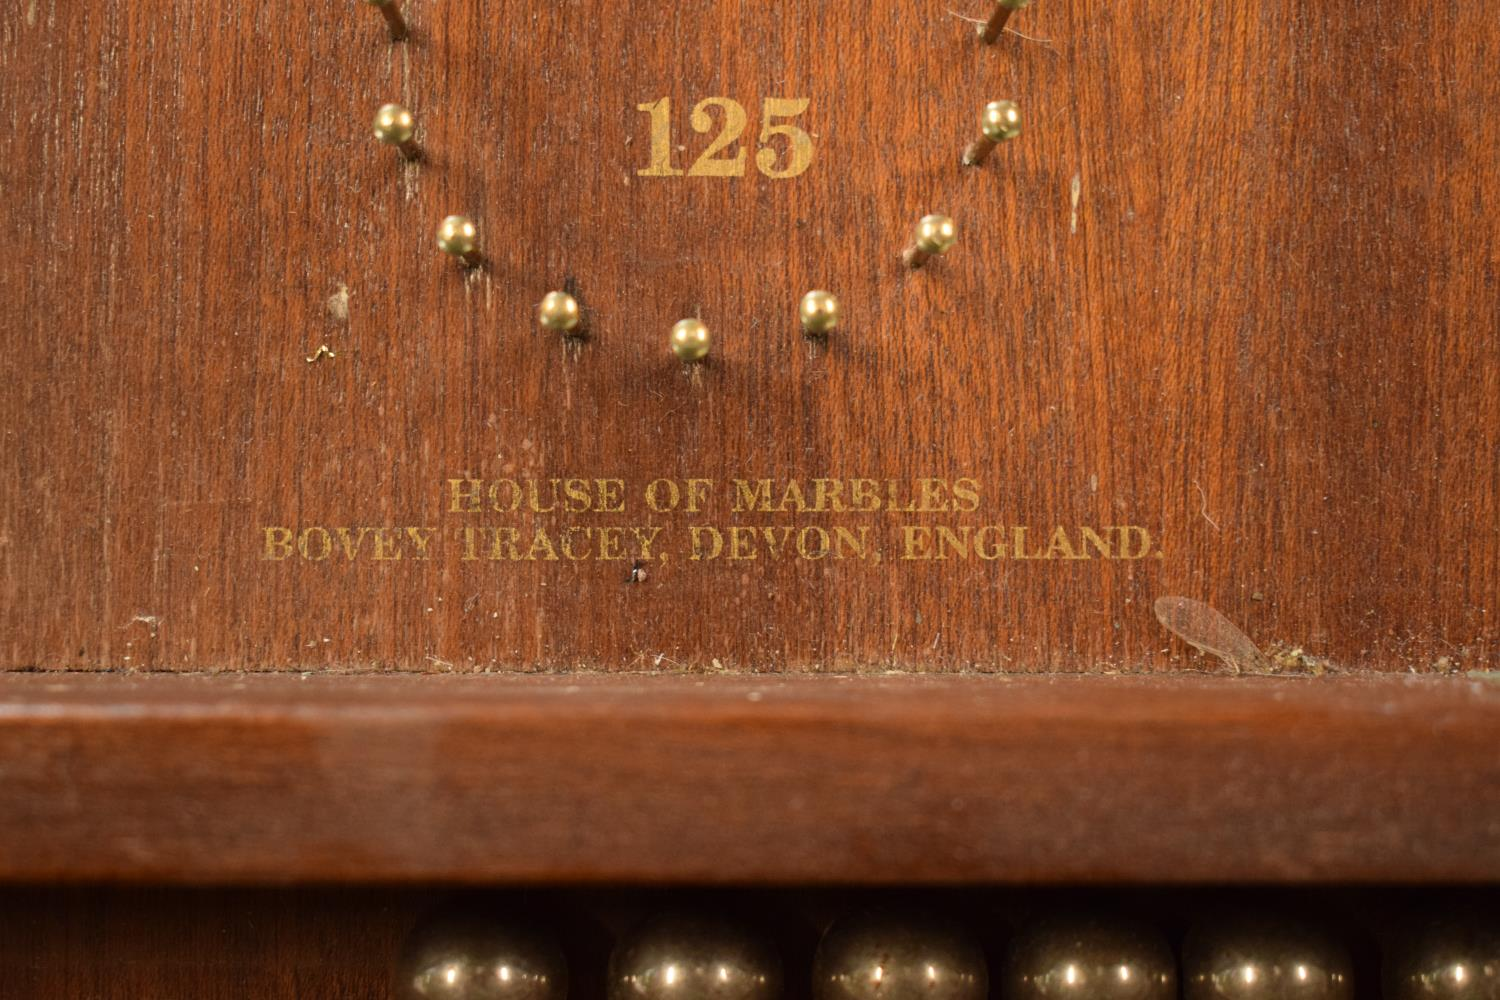 A pair of 20th century wooden bagatelle games complete with associated balls. One is made by Chad - Image 3 of 5